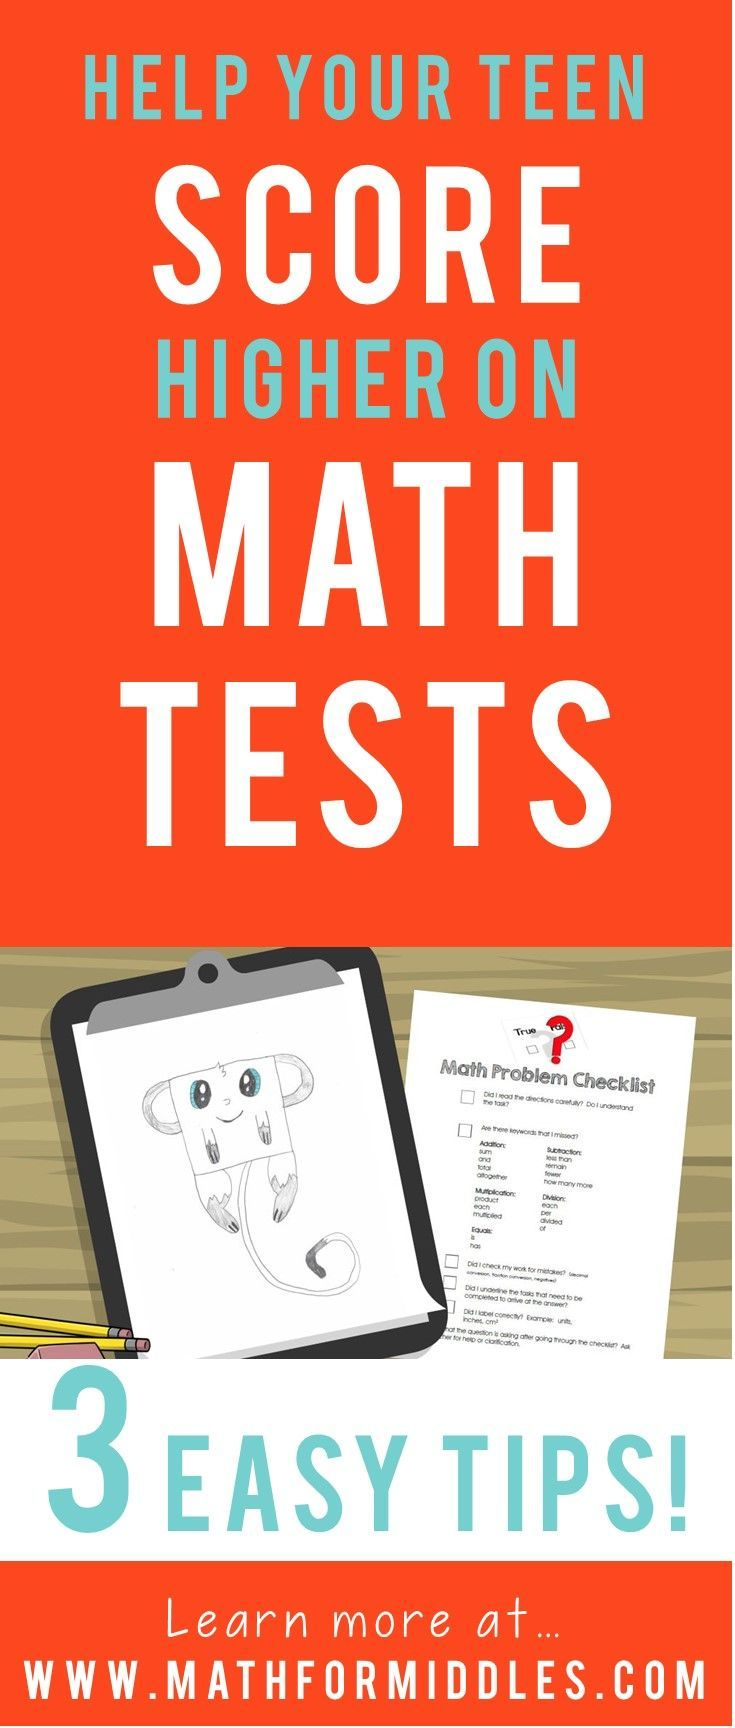 Teach Your Middle School Child to Score Better on Math Tests #parenting #middleschool #math